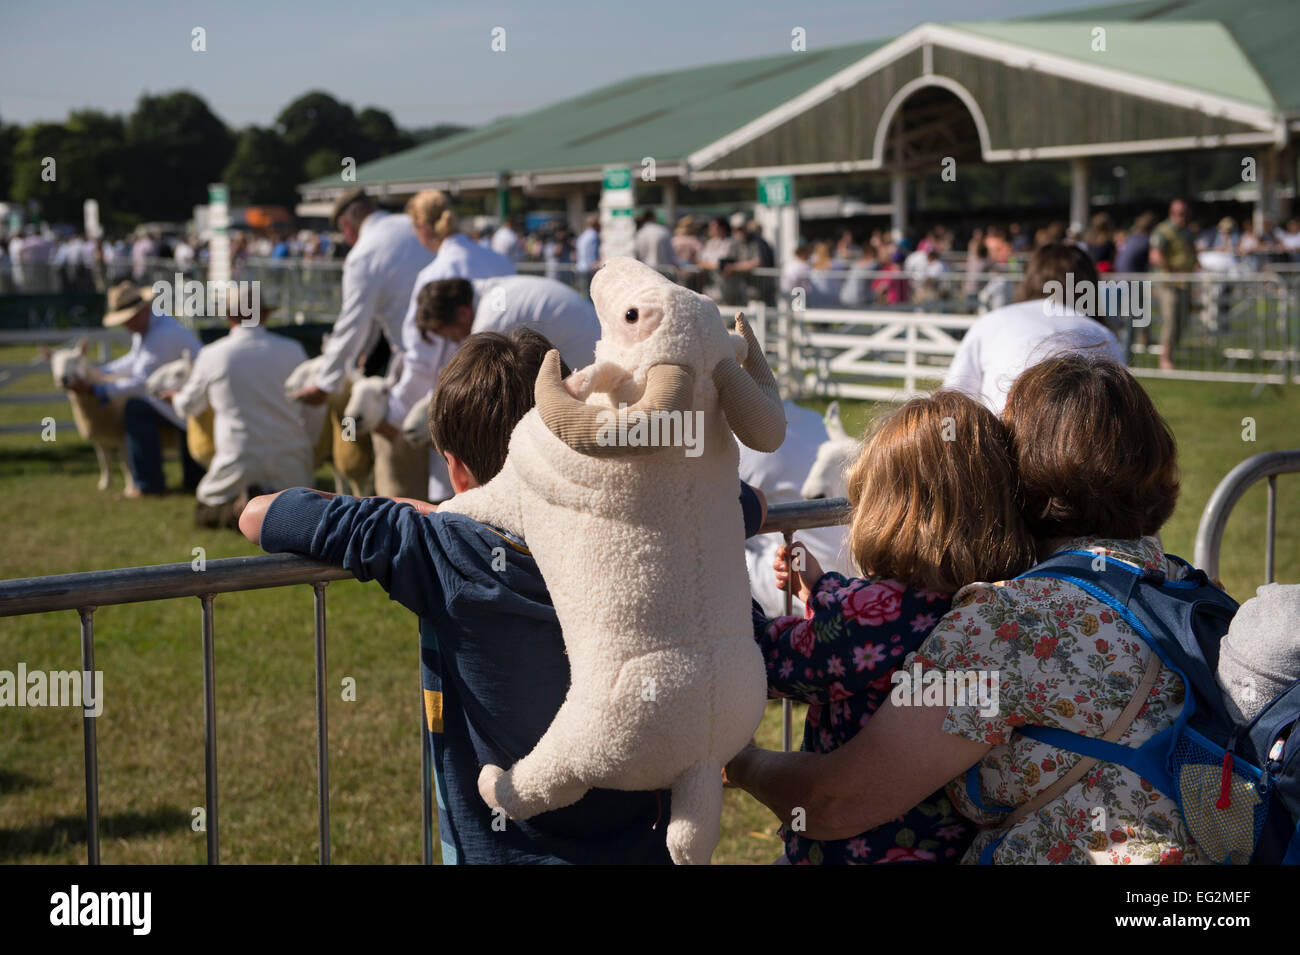 Under summer sun, mother & 2 young children, watch sheep competition at Great Yorkshire Show, England, UK. Amusing, - Stock Image